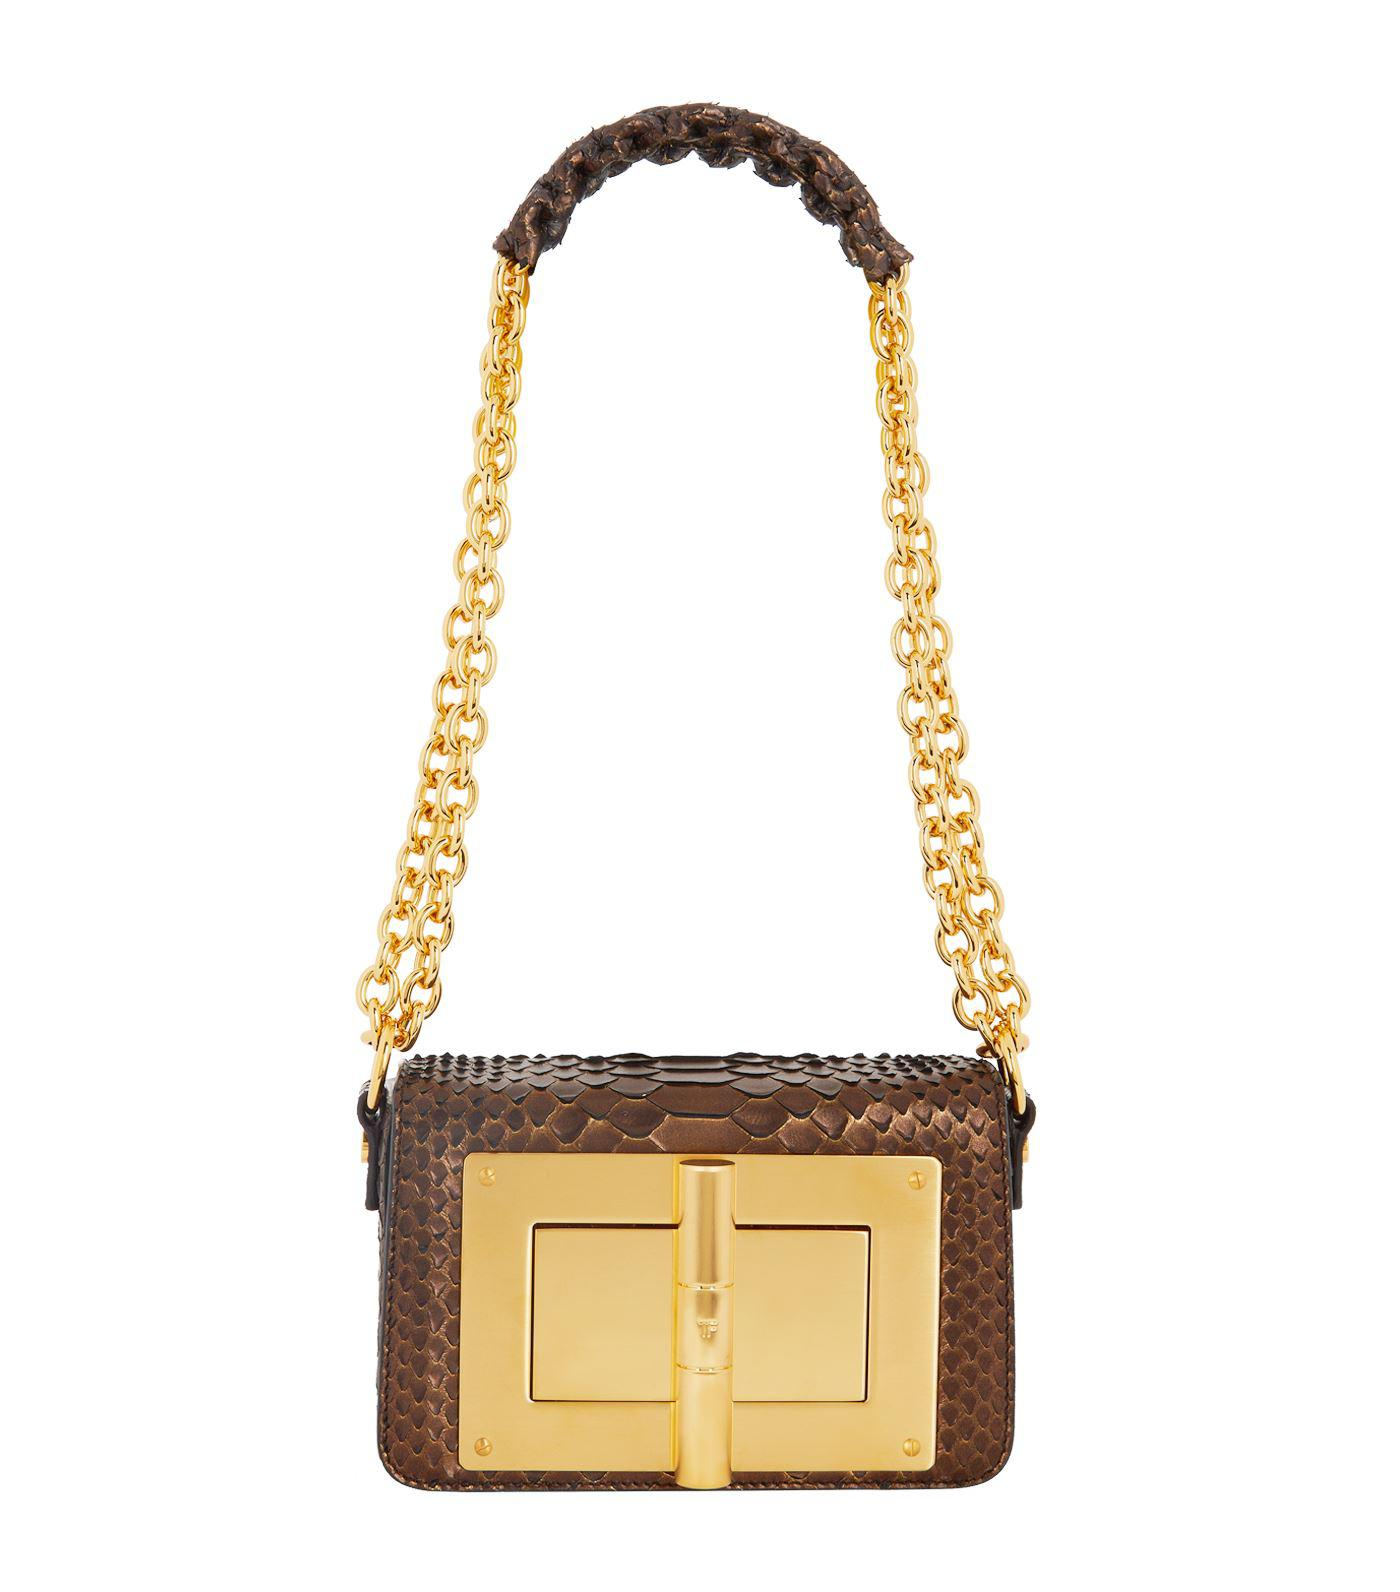 fbda9fe0c347 Tom Ford Medium Python Natalia Shoulder Bag in Metallic - Lyst